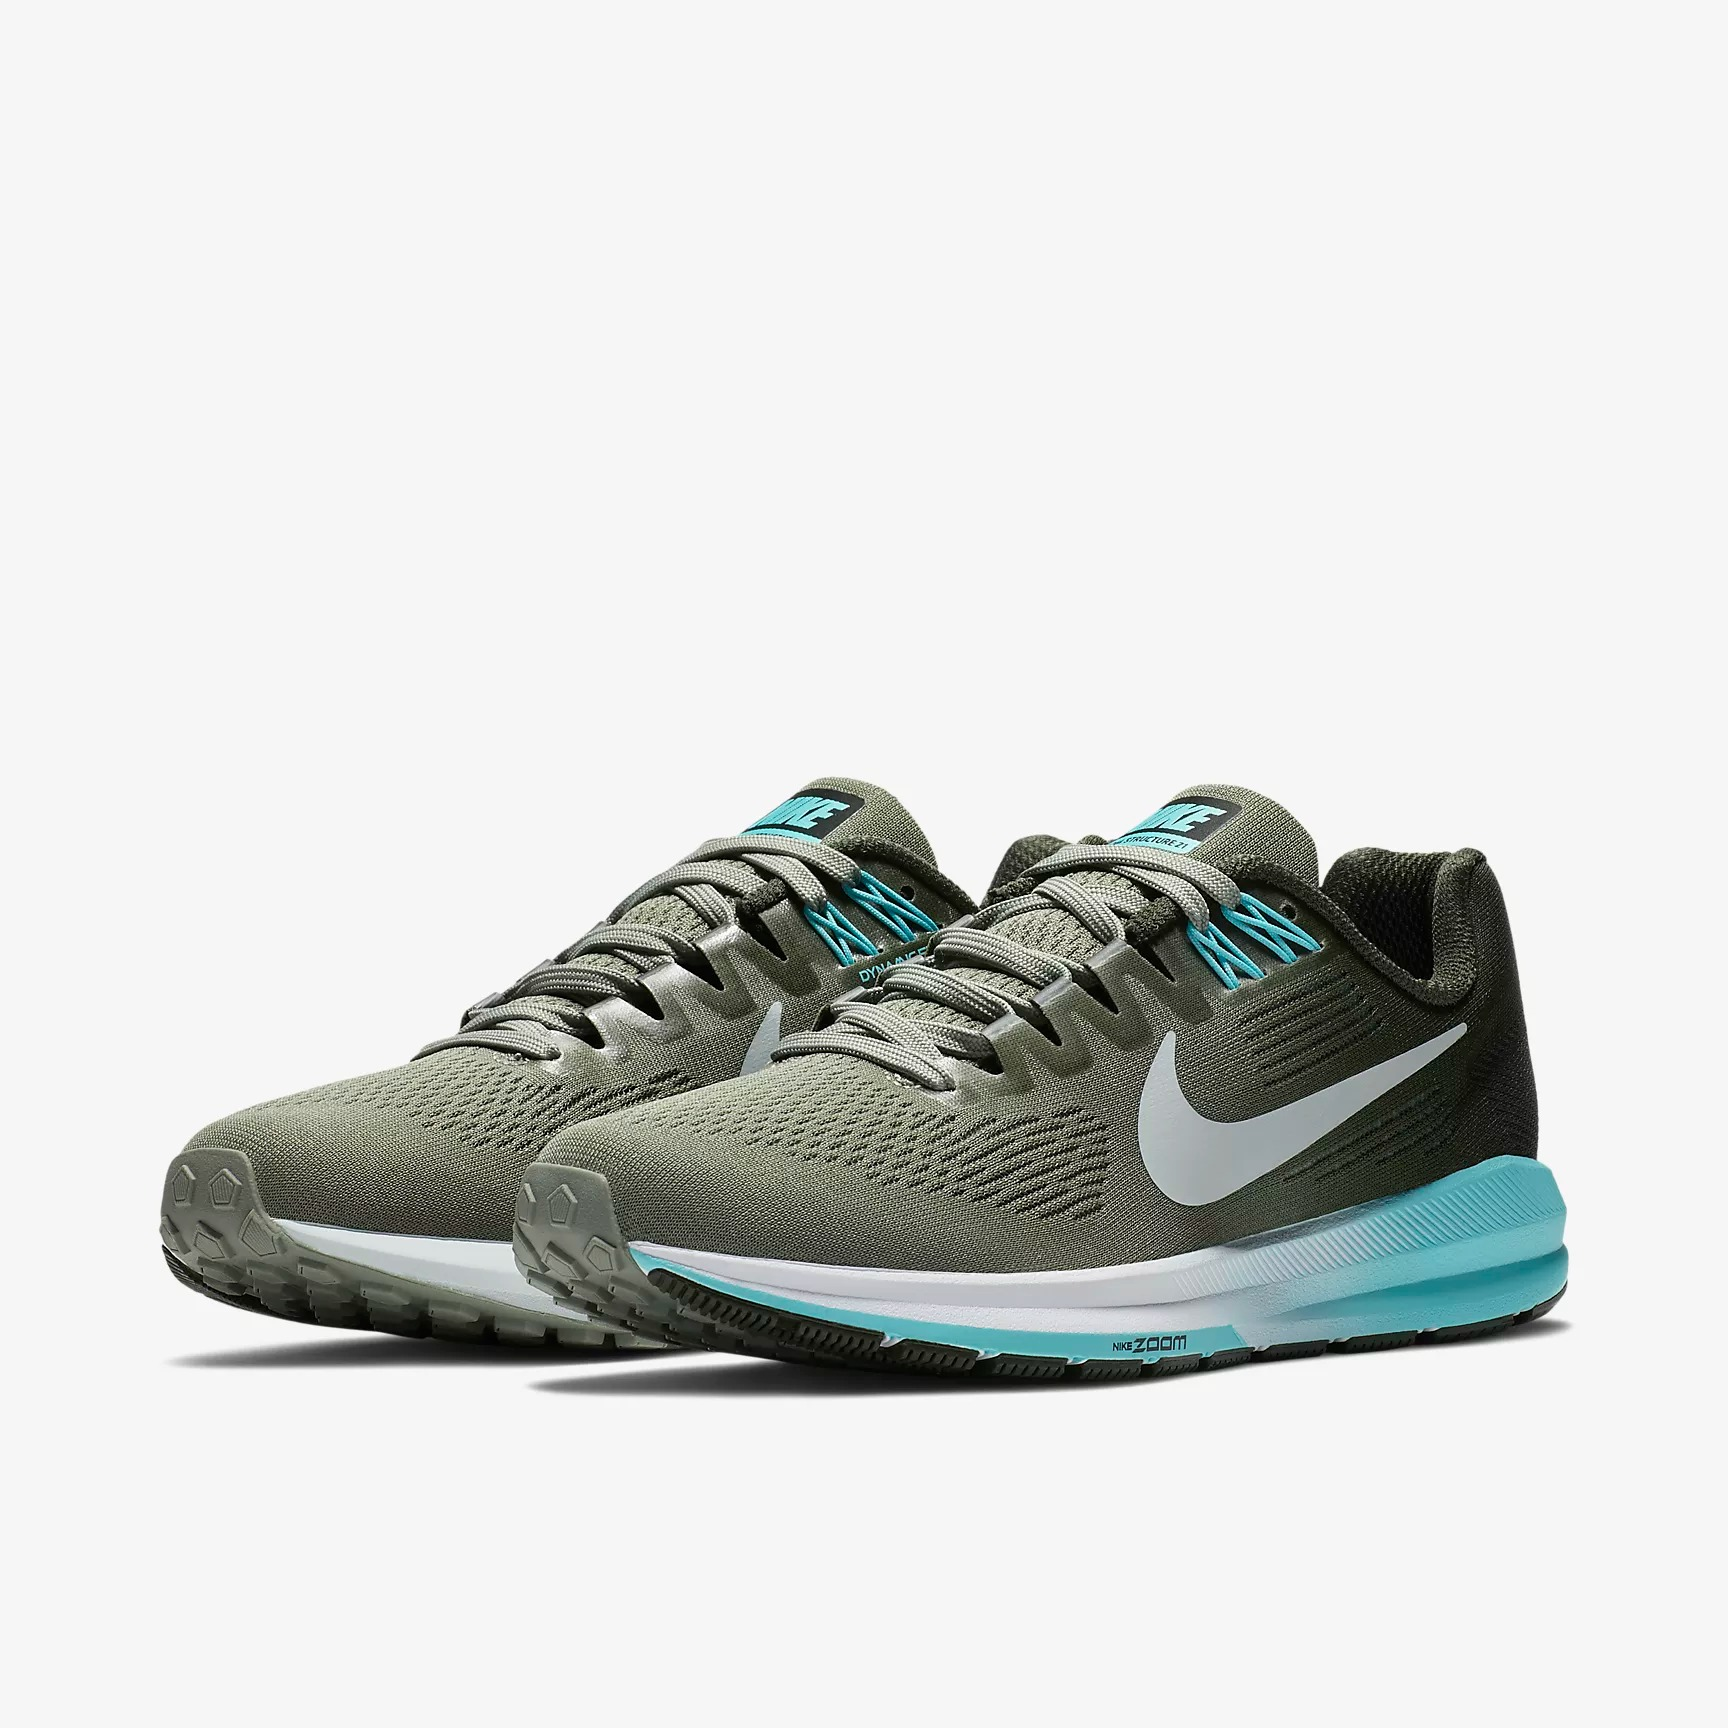 1c554de15fd35 Nike Wmns Air Zoom Structure 21 Running Shoes - SPORT SHOES RUNNING SHOES -  Superfanas.lt